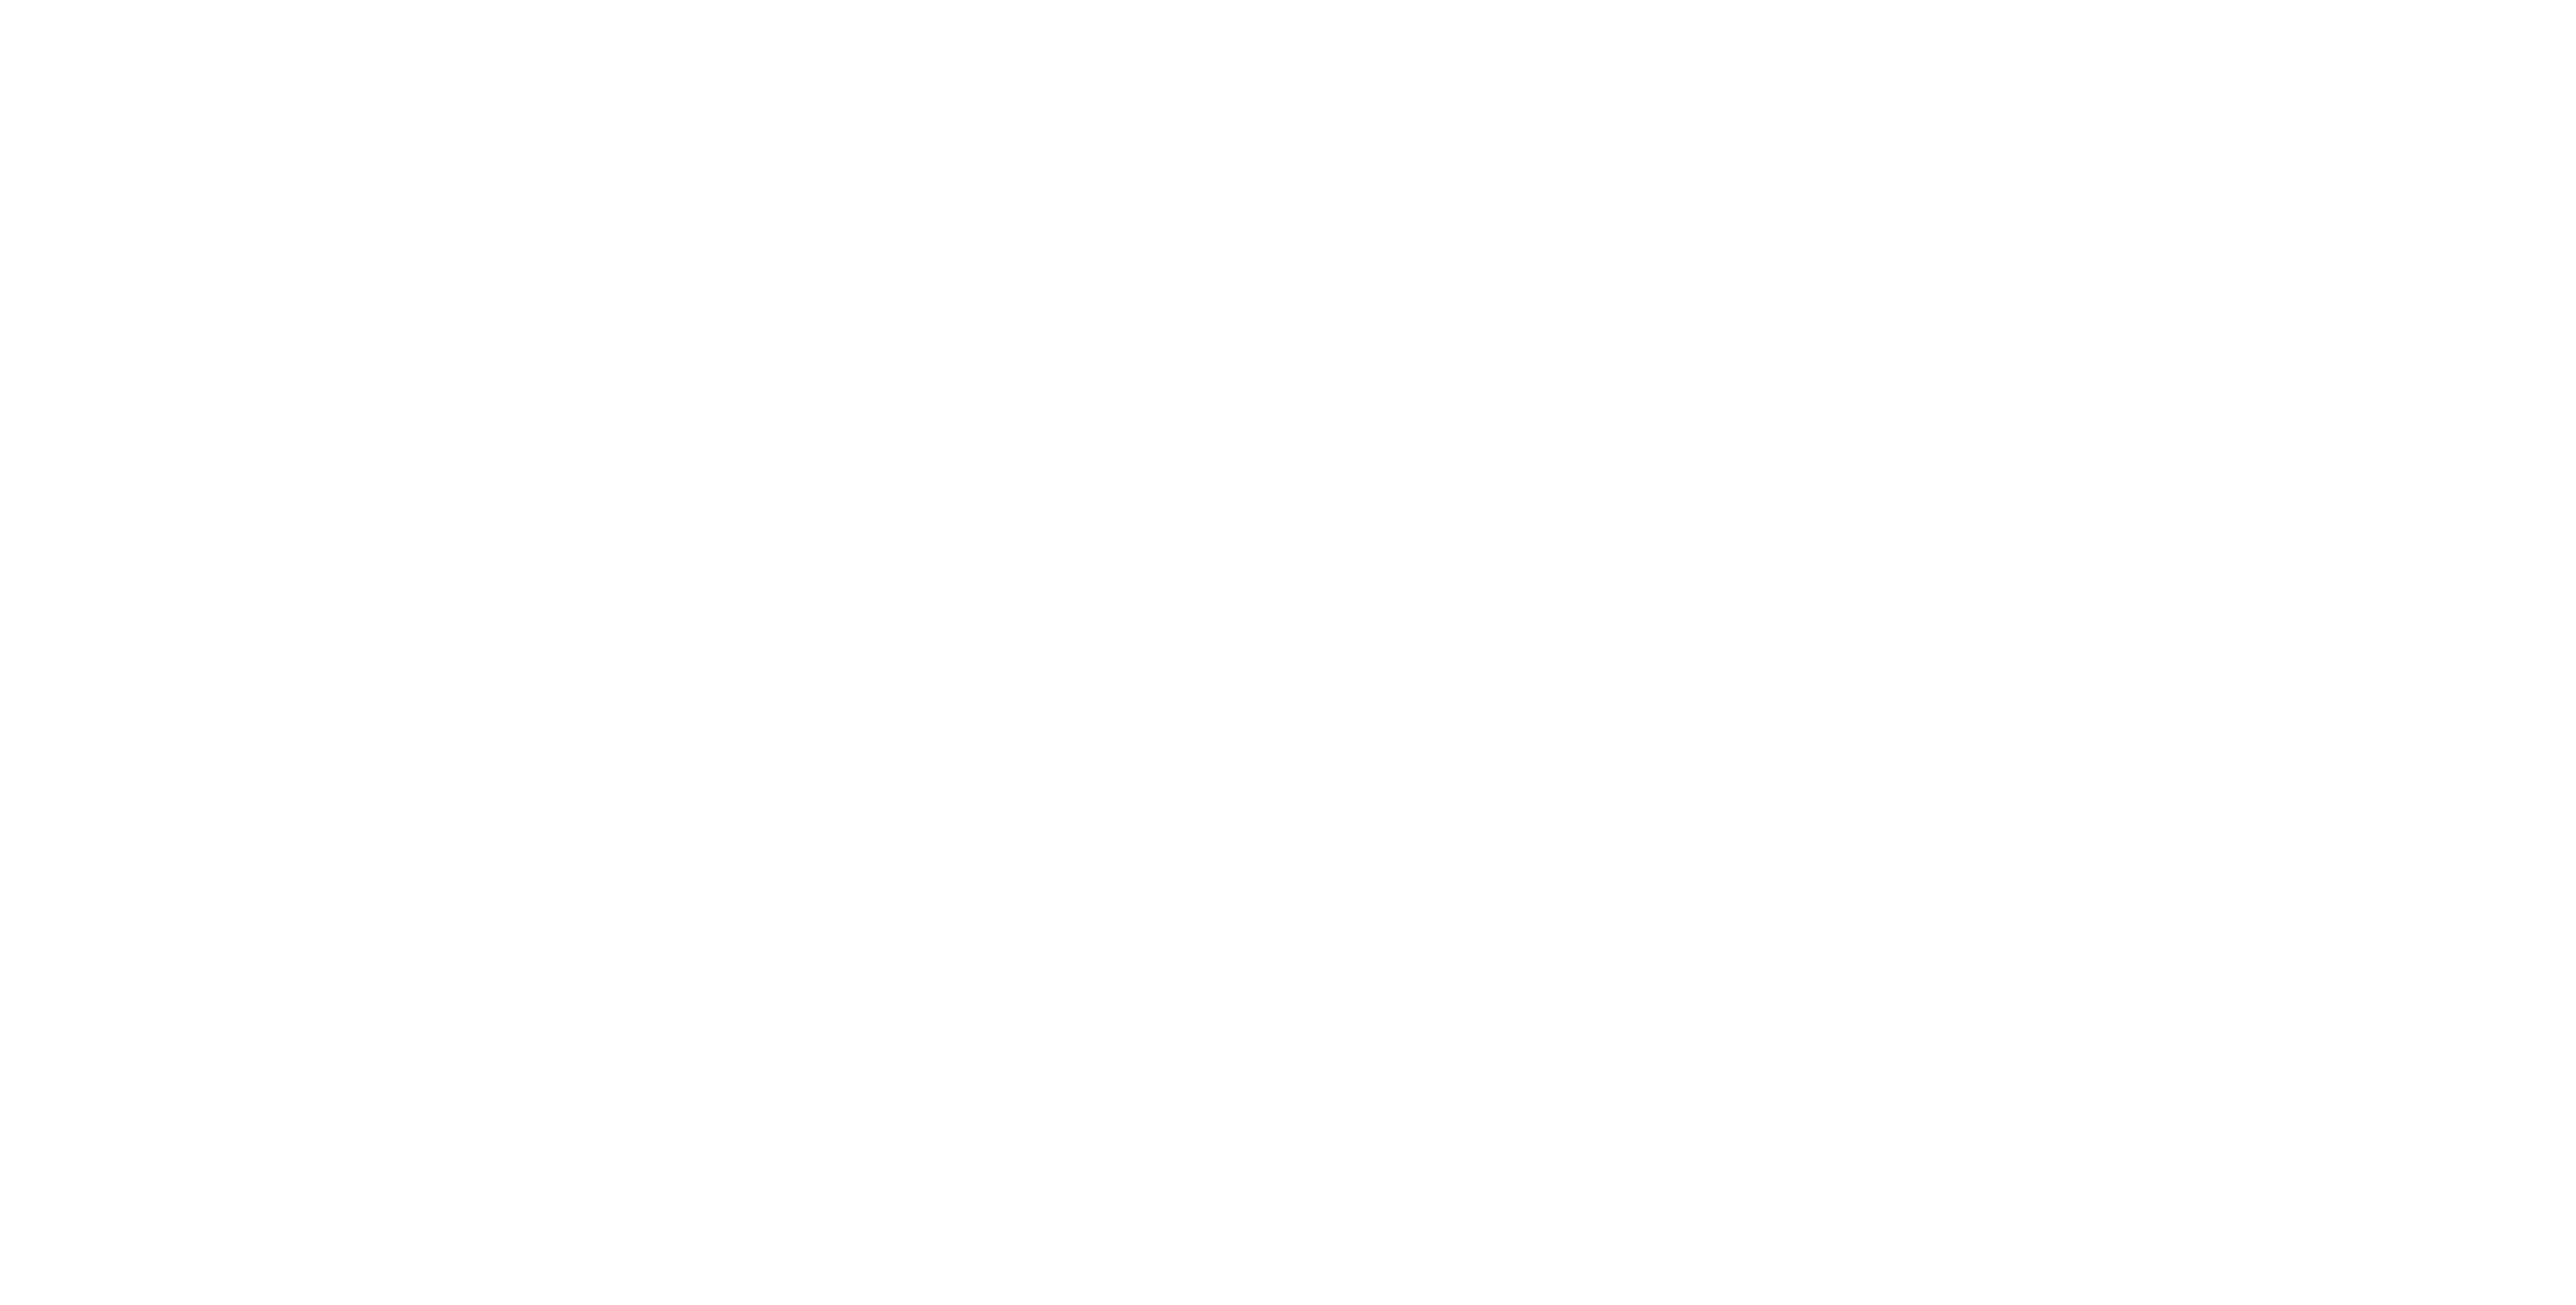 Photo booth studio white logo